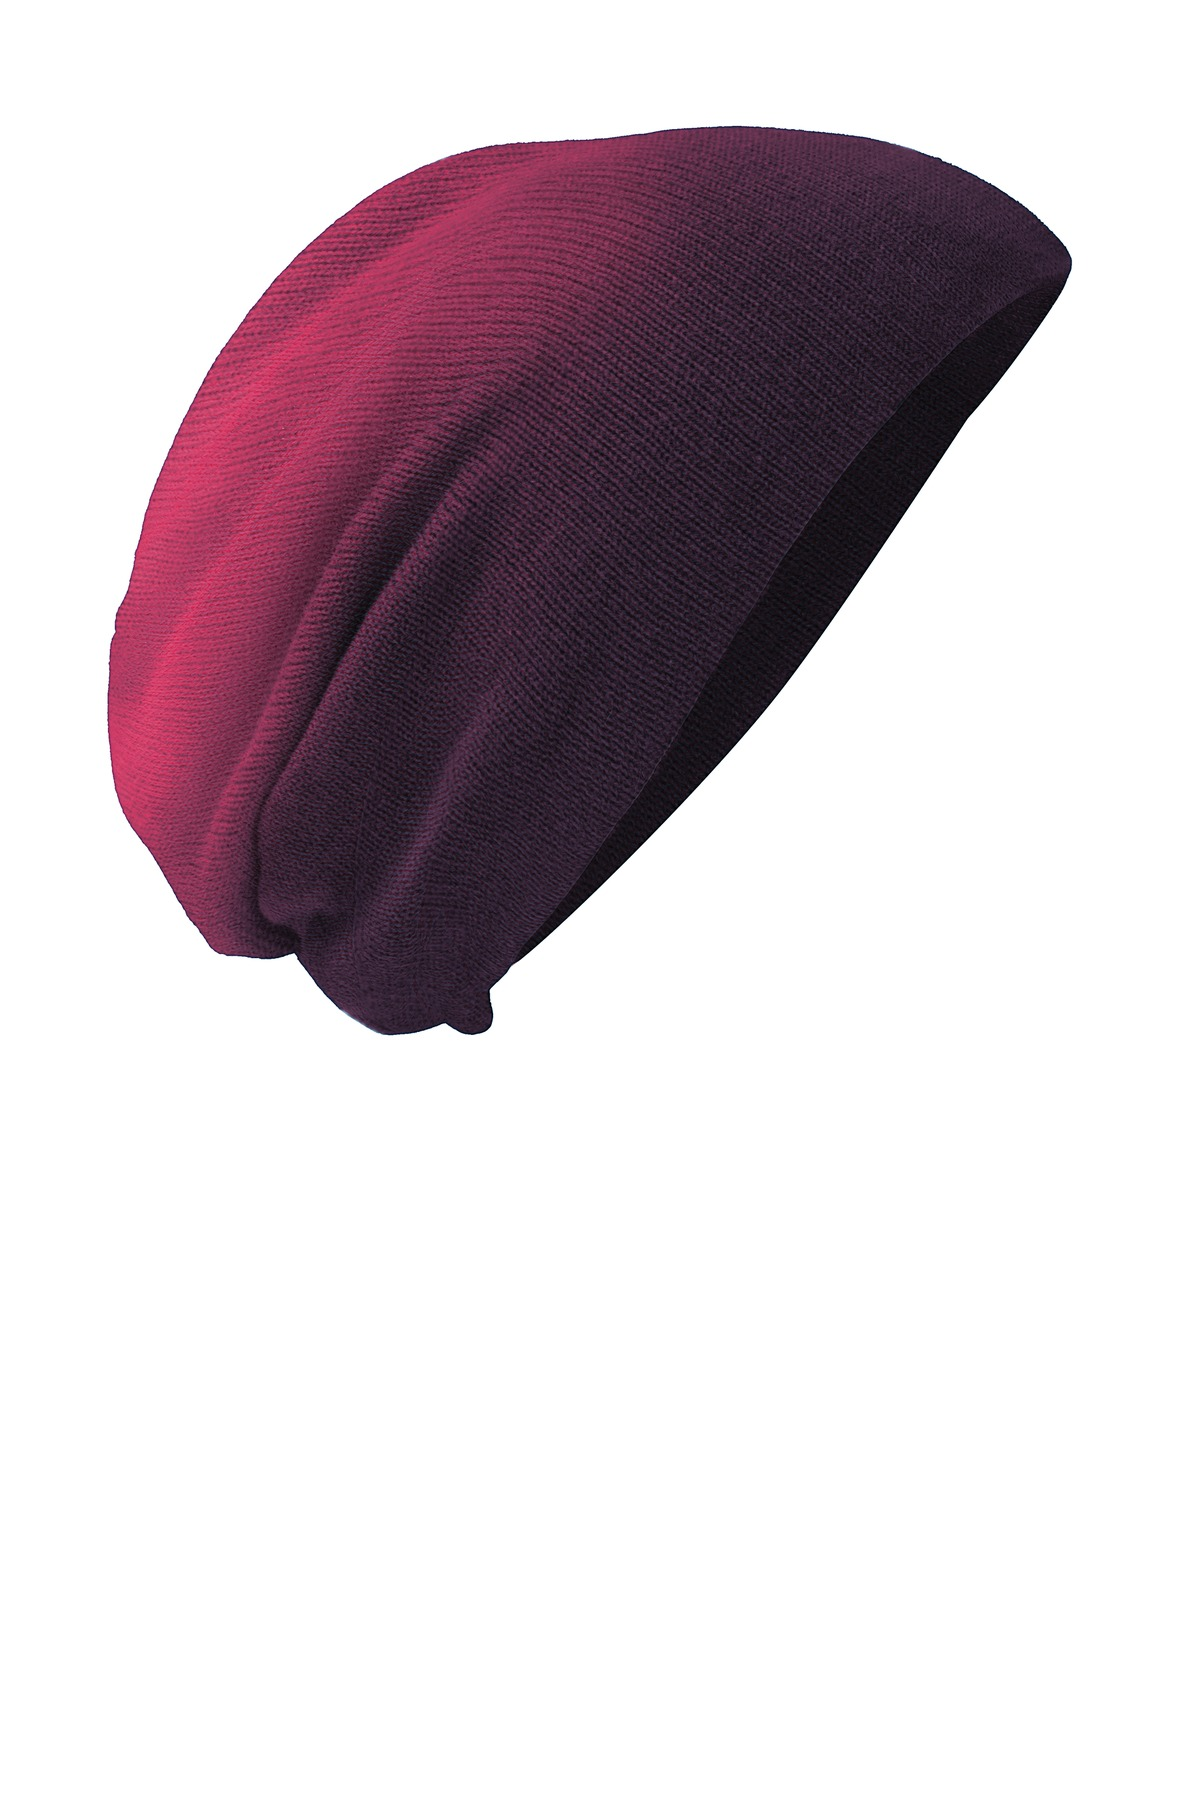 District ®  Slouch Beanie DT618 - Eggplant Dip Dye